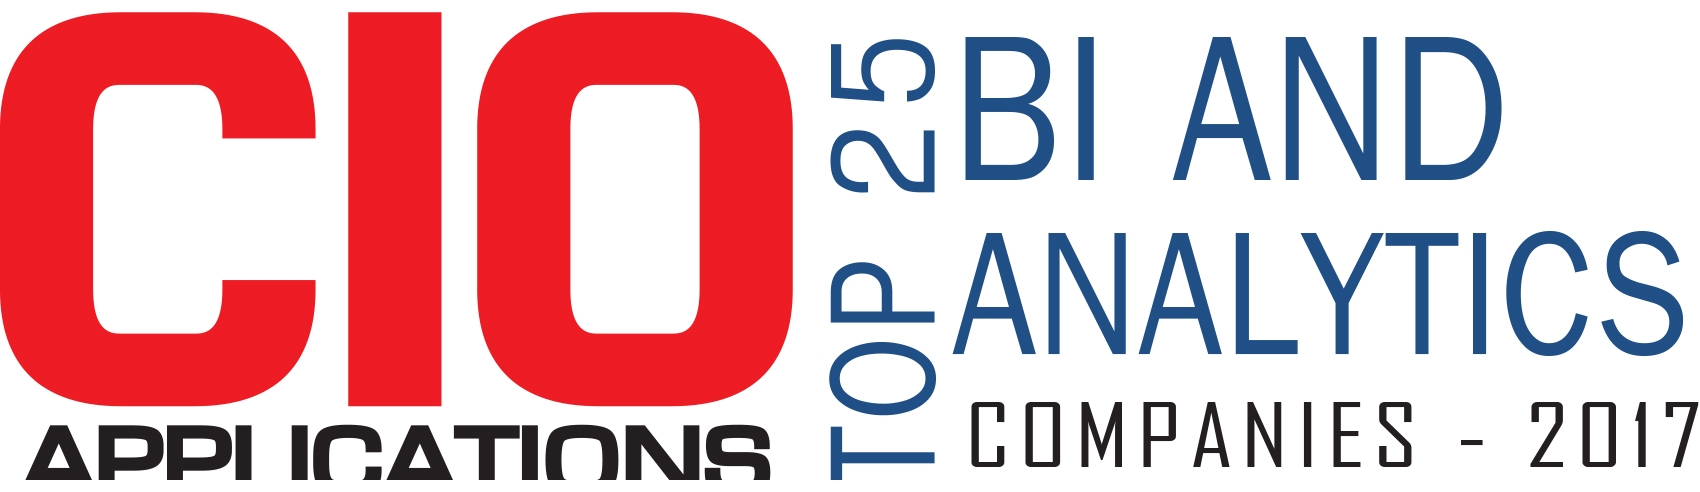 Top 25 BI and Analytics Companies - 2017